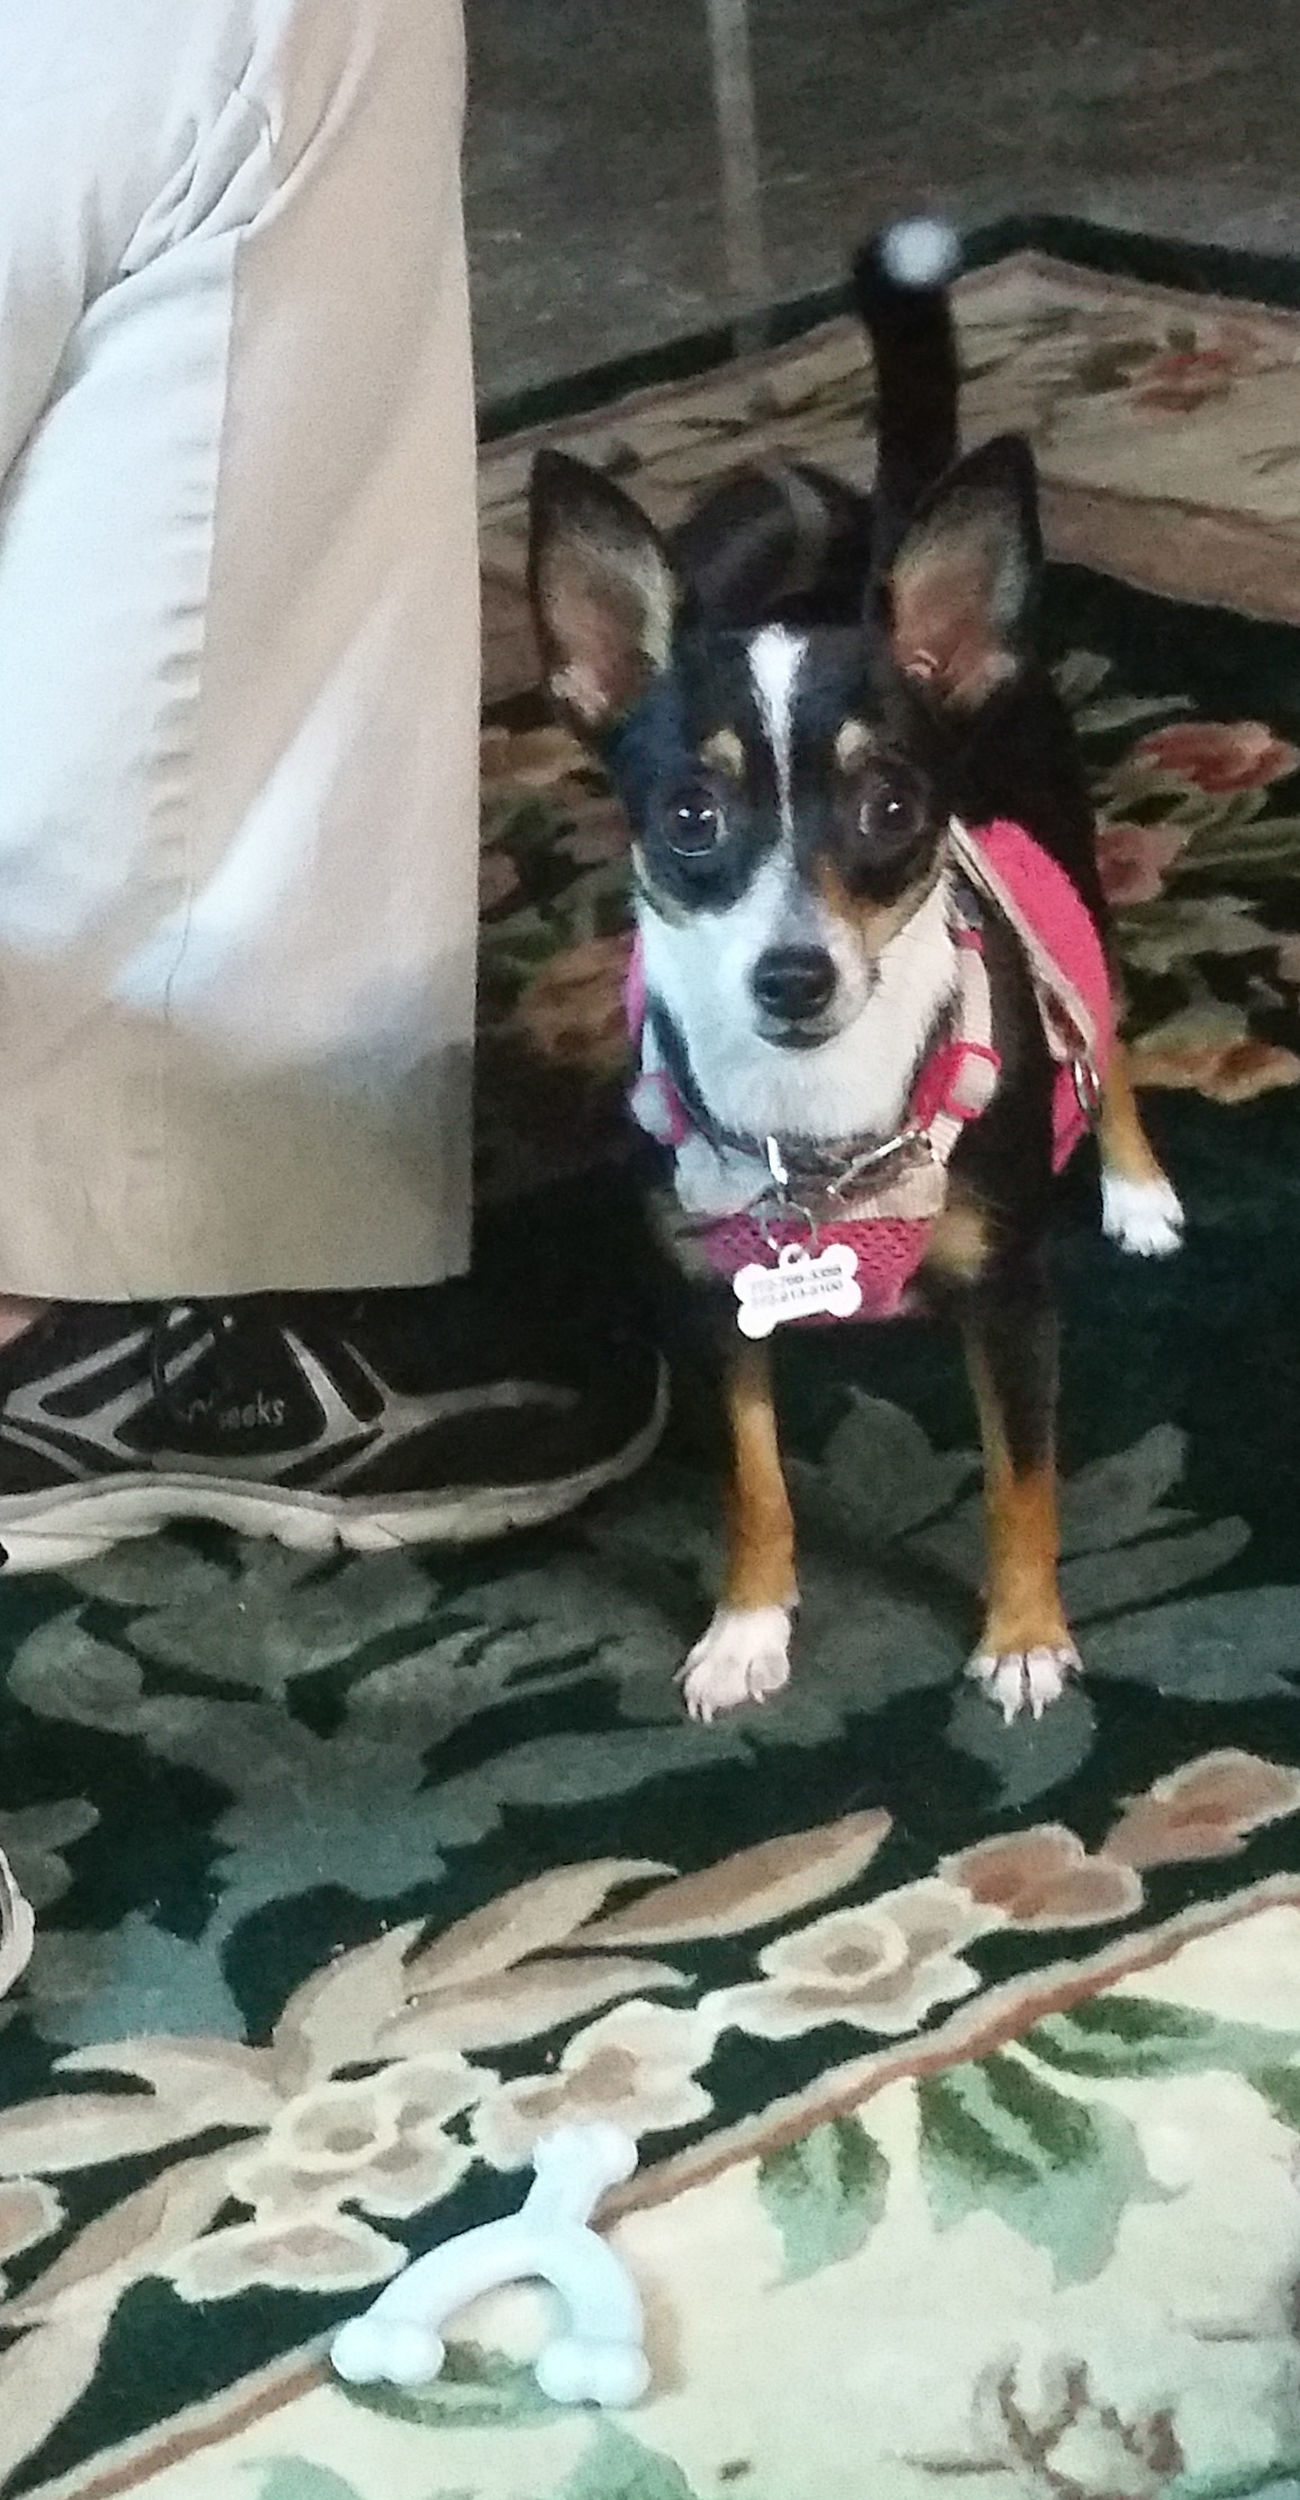 Rat Terrier Chihuahua Puppy Dog Named Kat Rescued ❤ Dog's Life Live Oak Animal Hospital My Dogs Are Cooler Than Your Kids Chihuahualife Spoiled Dog Not A Care In The World My Heart ❤ Dog Chihuahuas Of Eyeem 6 Months Old Multi Colored